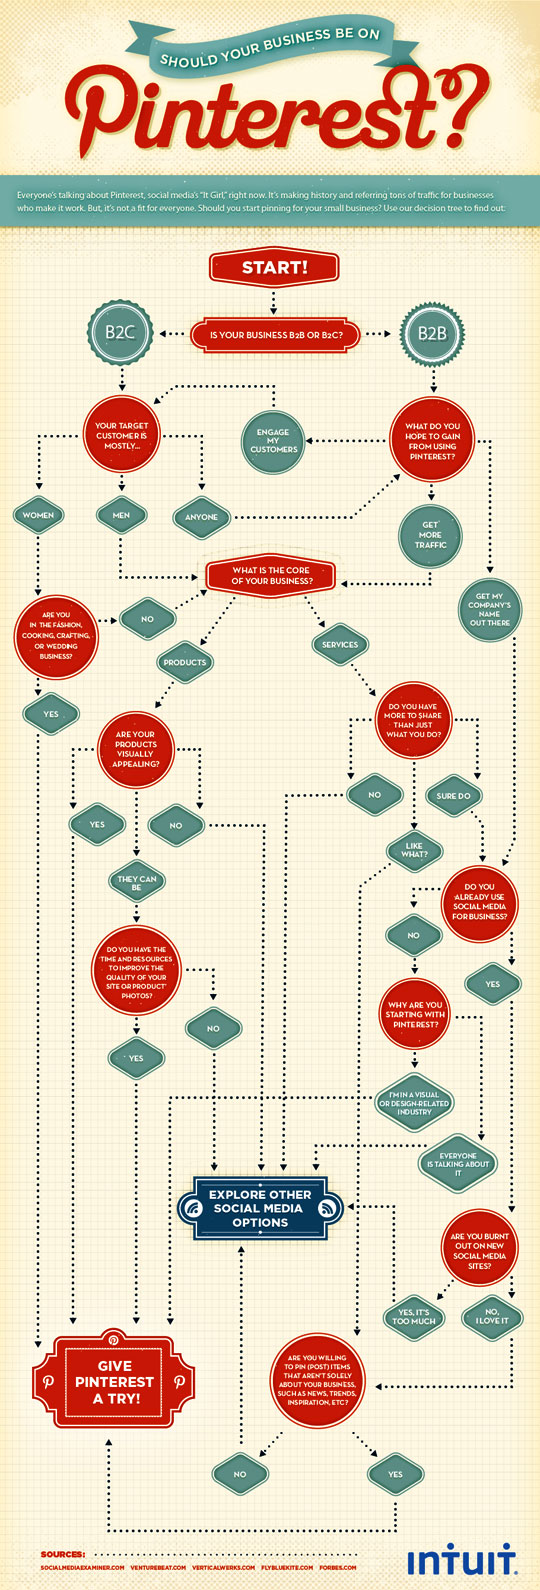 Should You Use Pinterest For Your Business? Infographic